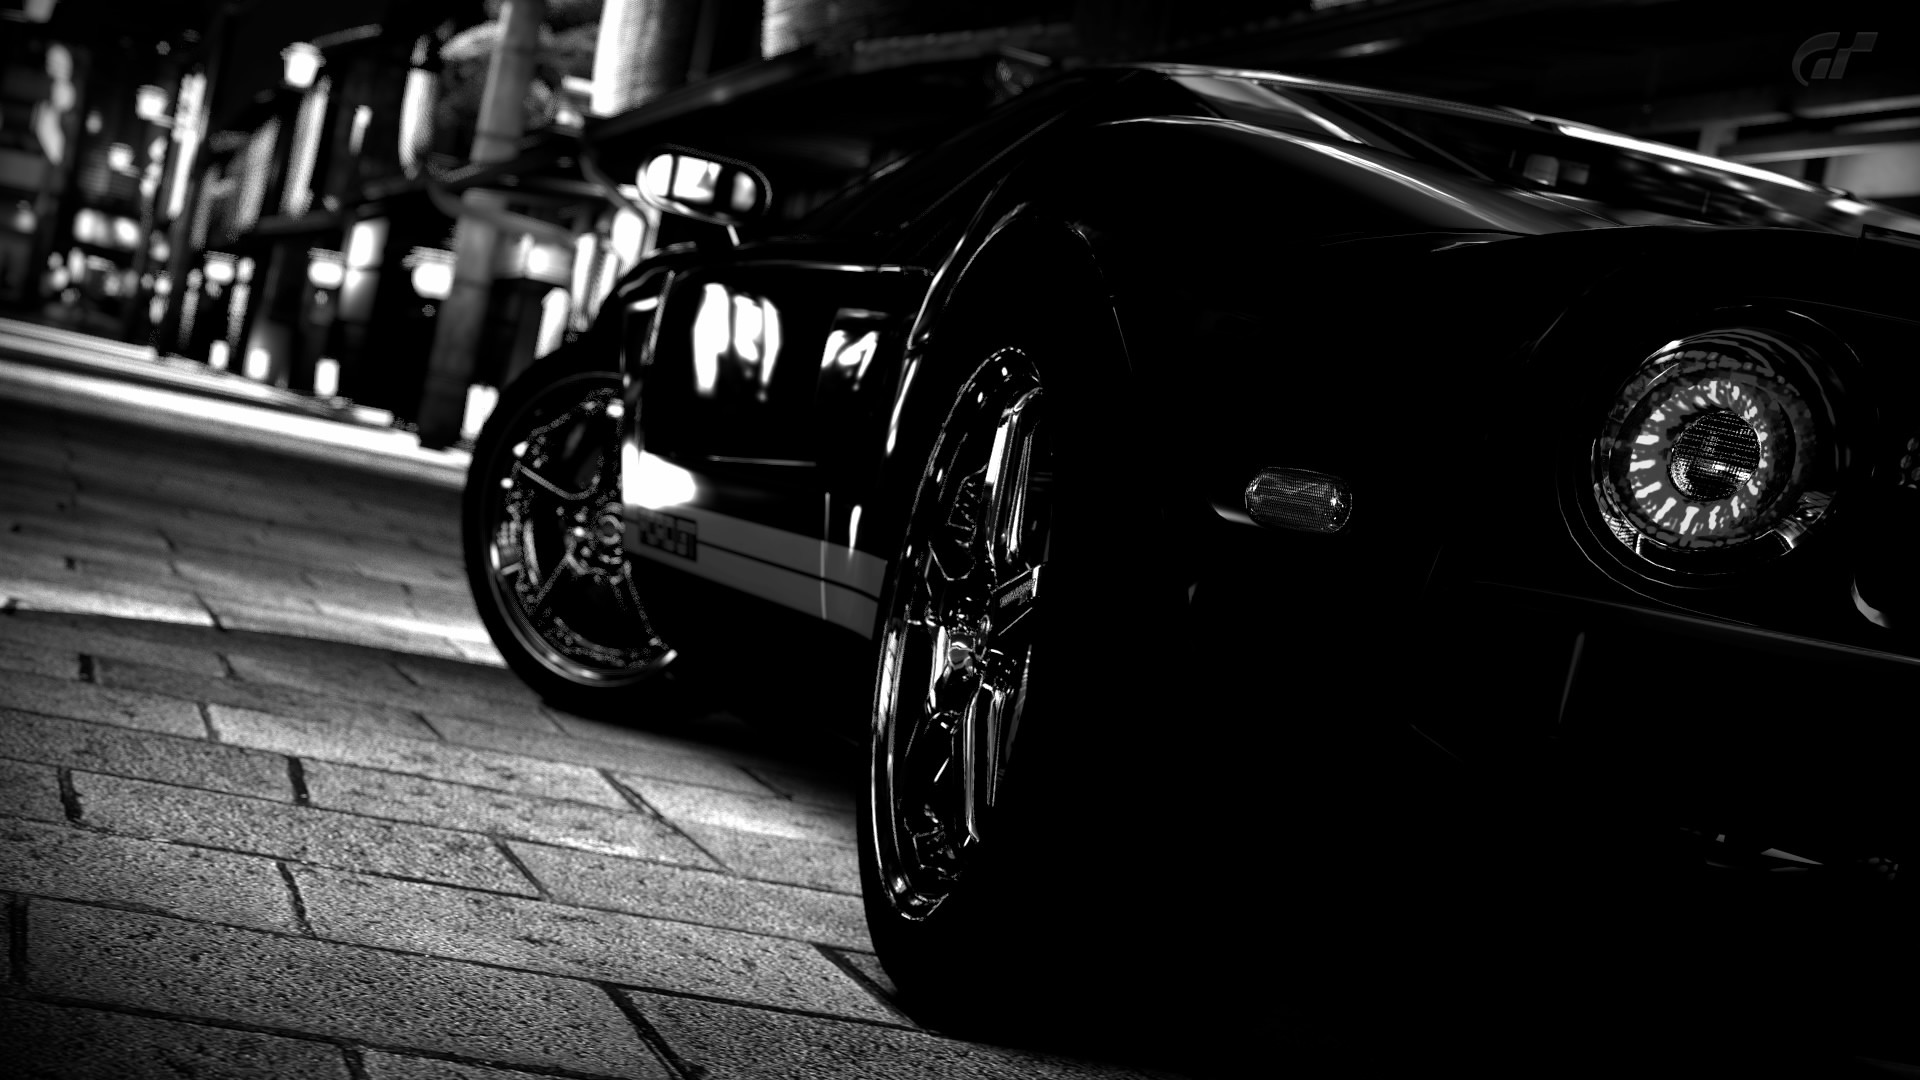 Desktop 1080p Cars Photos